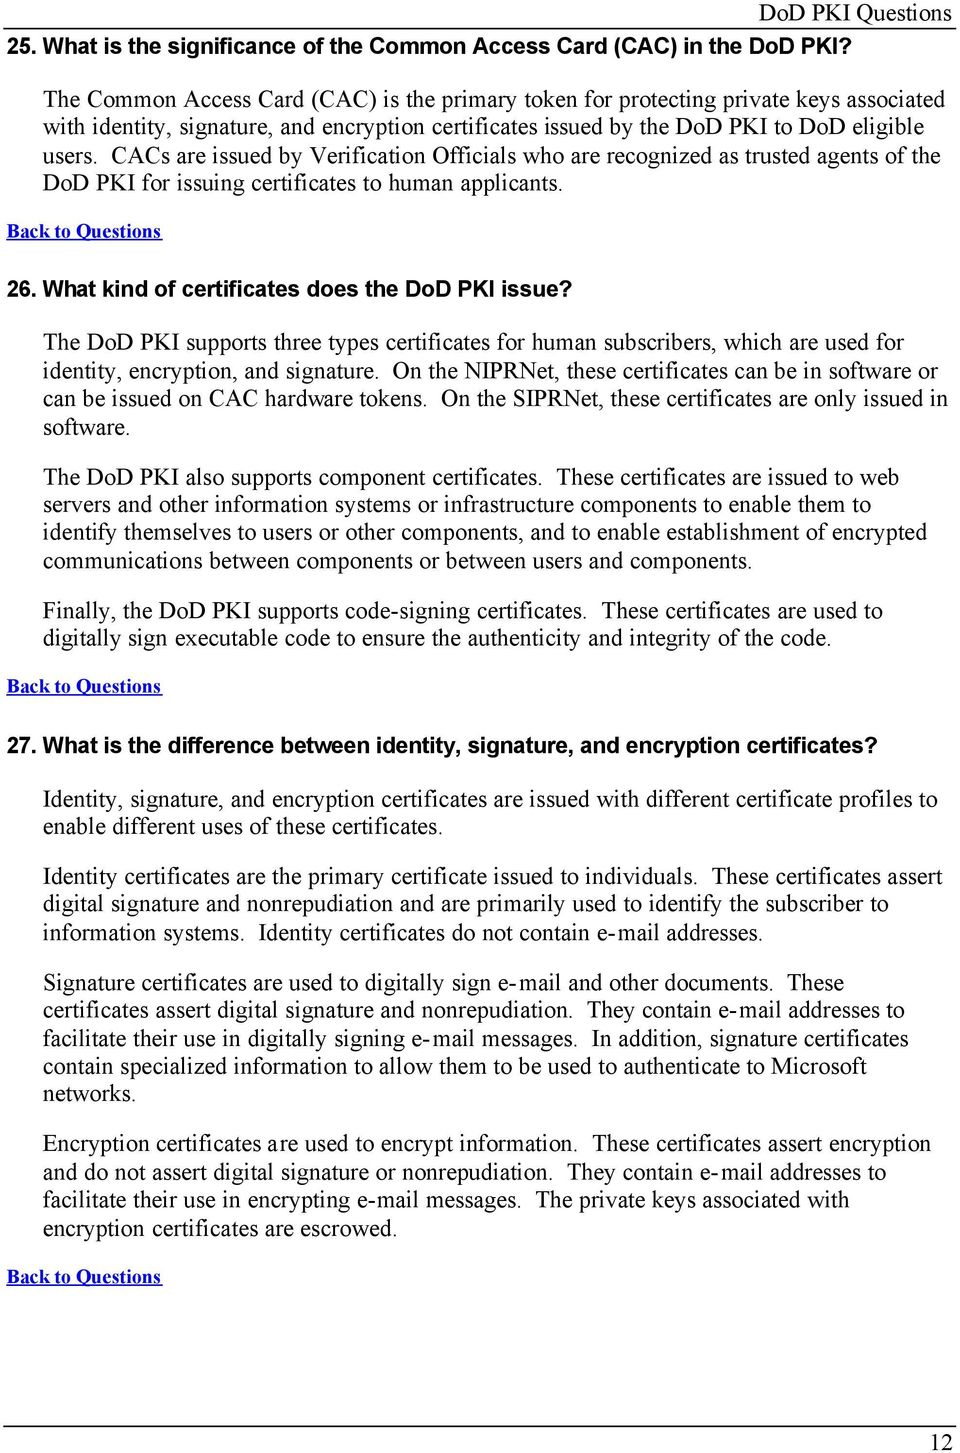 users. CACs are issued by Verification Officials who are recognized as trusted agents of the DoD PKI for issuing certificates to human applicants. 26. What kind of certificates does the DoD PKI issue?